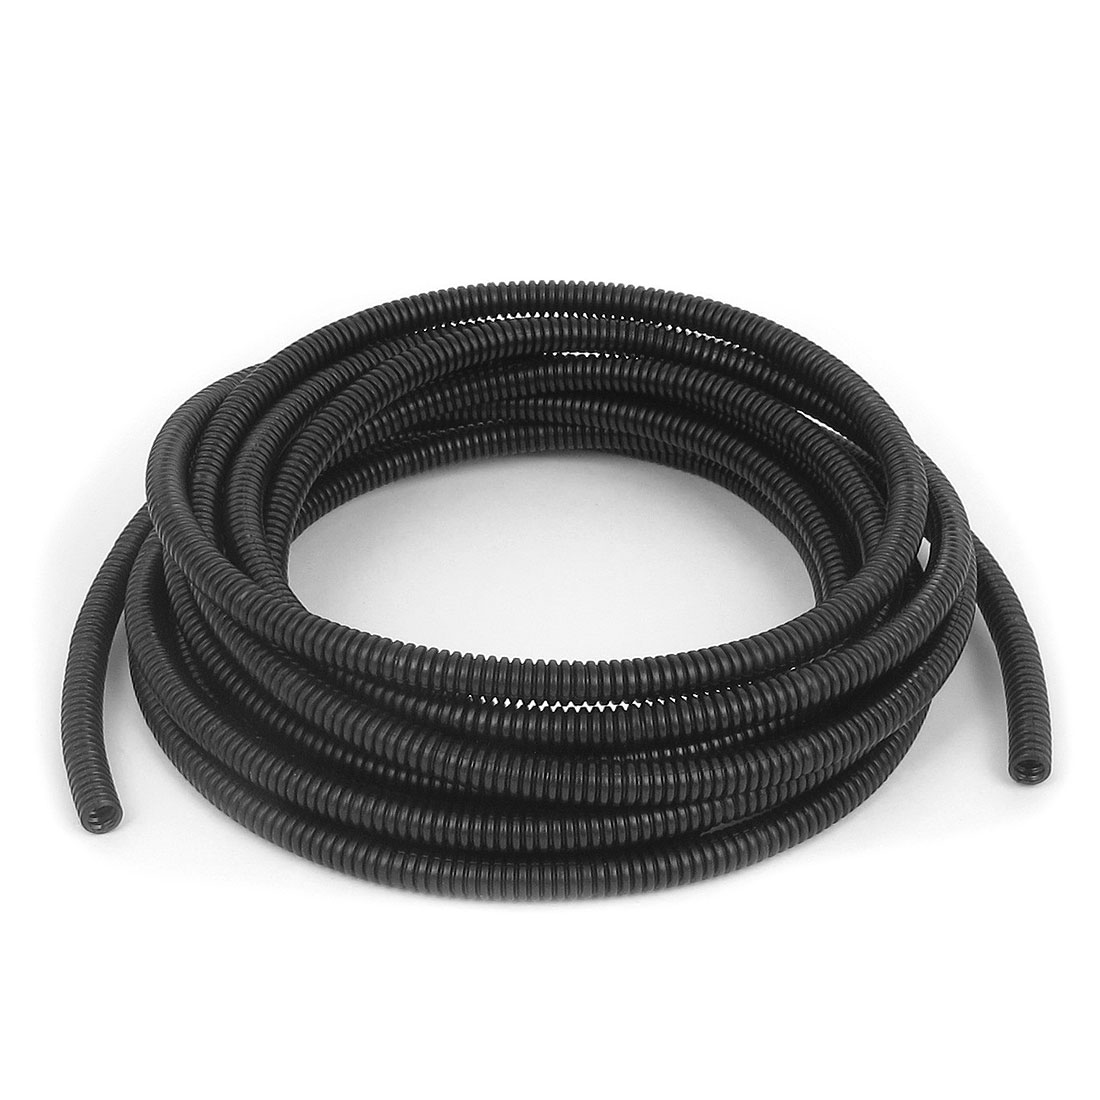 Black Spiral Conduit Split Tube Cable Tidy Wire Loom Harness 10mm ID x 13mm OD 2m Length